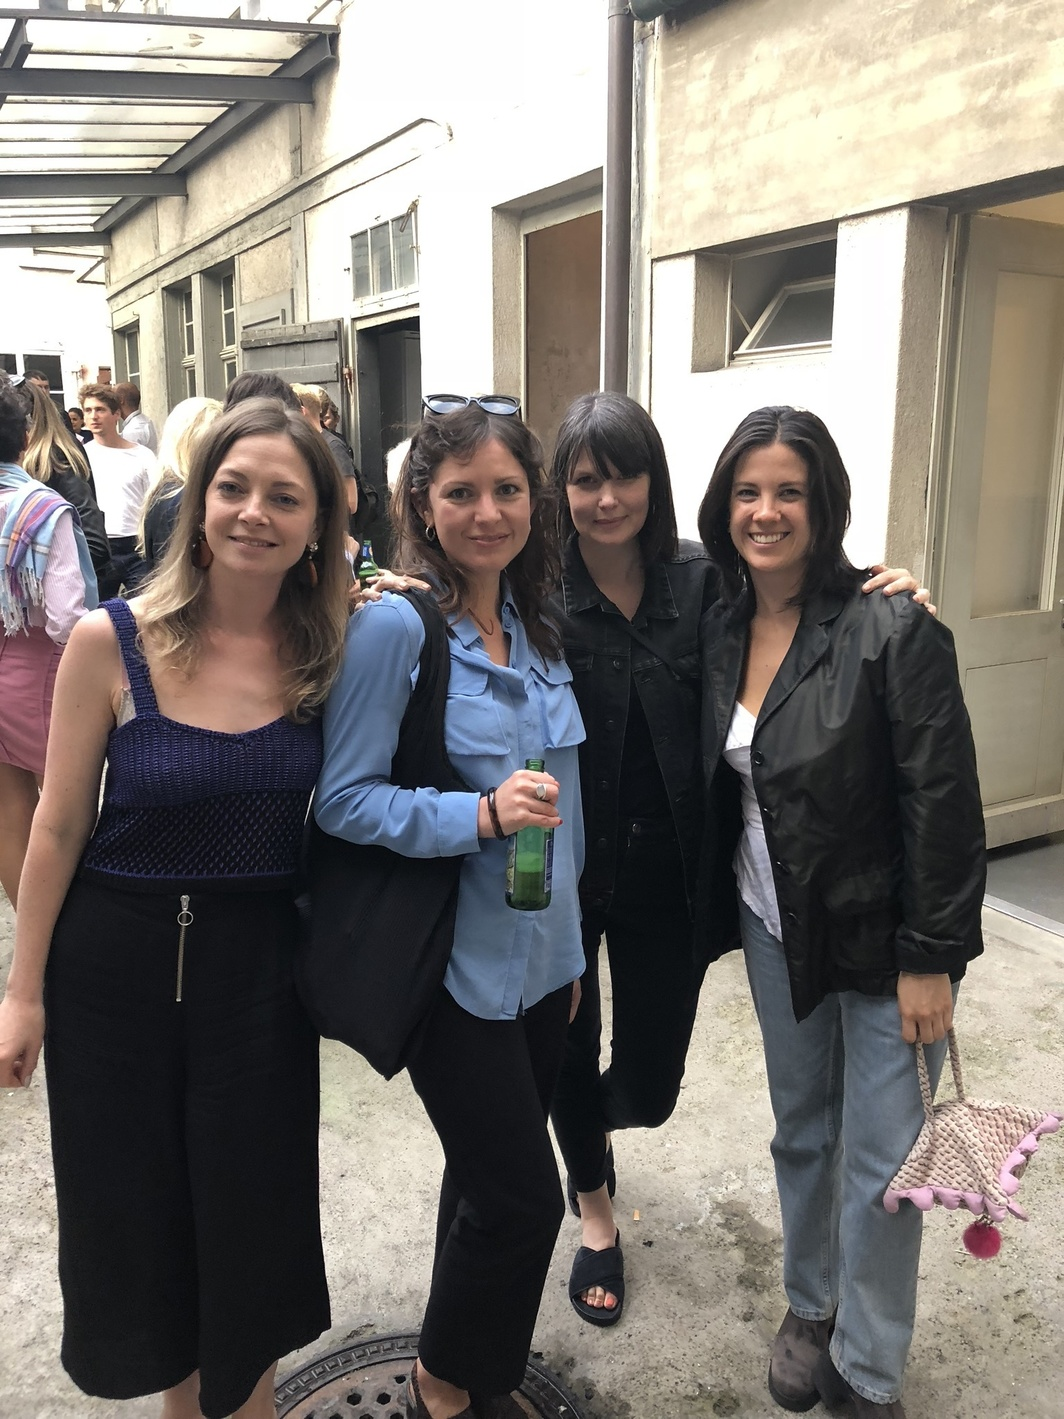 Curator Laura McLean-Ferris of the Swiss Institute; Harriet Blaise Mitchell, associate director at Herald Street; Kyla McDonald, interim director of the Bonner Kunstverein; and artist Tamen Perez.